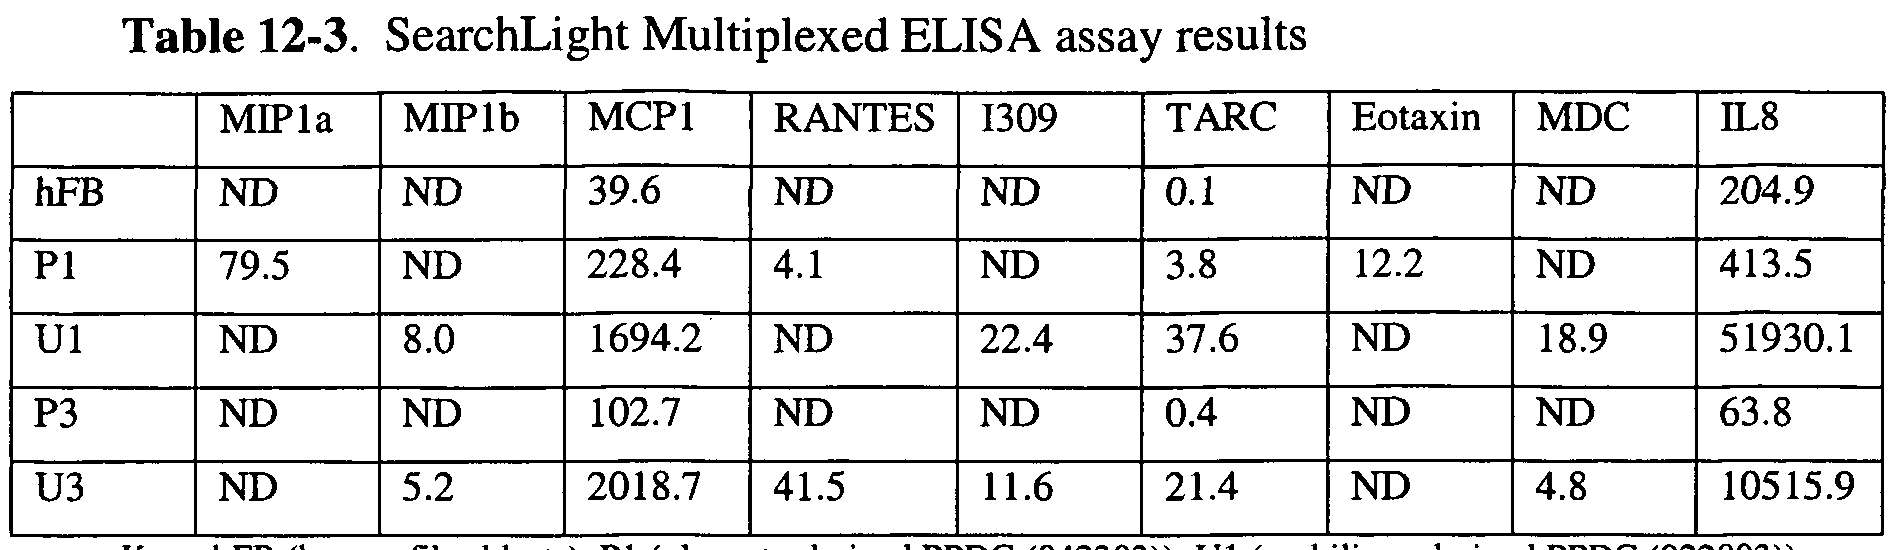 WO2005001078A2 - Regeneration and repair of neural tissue